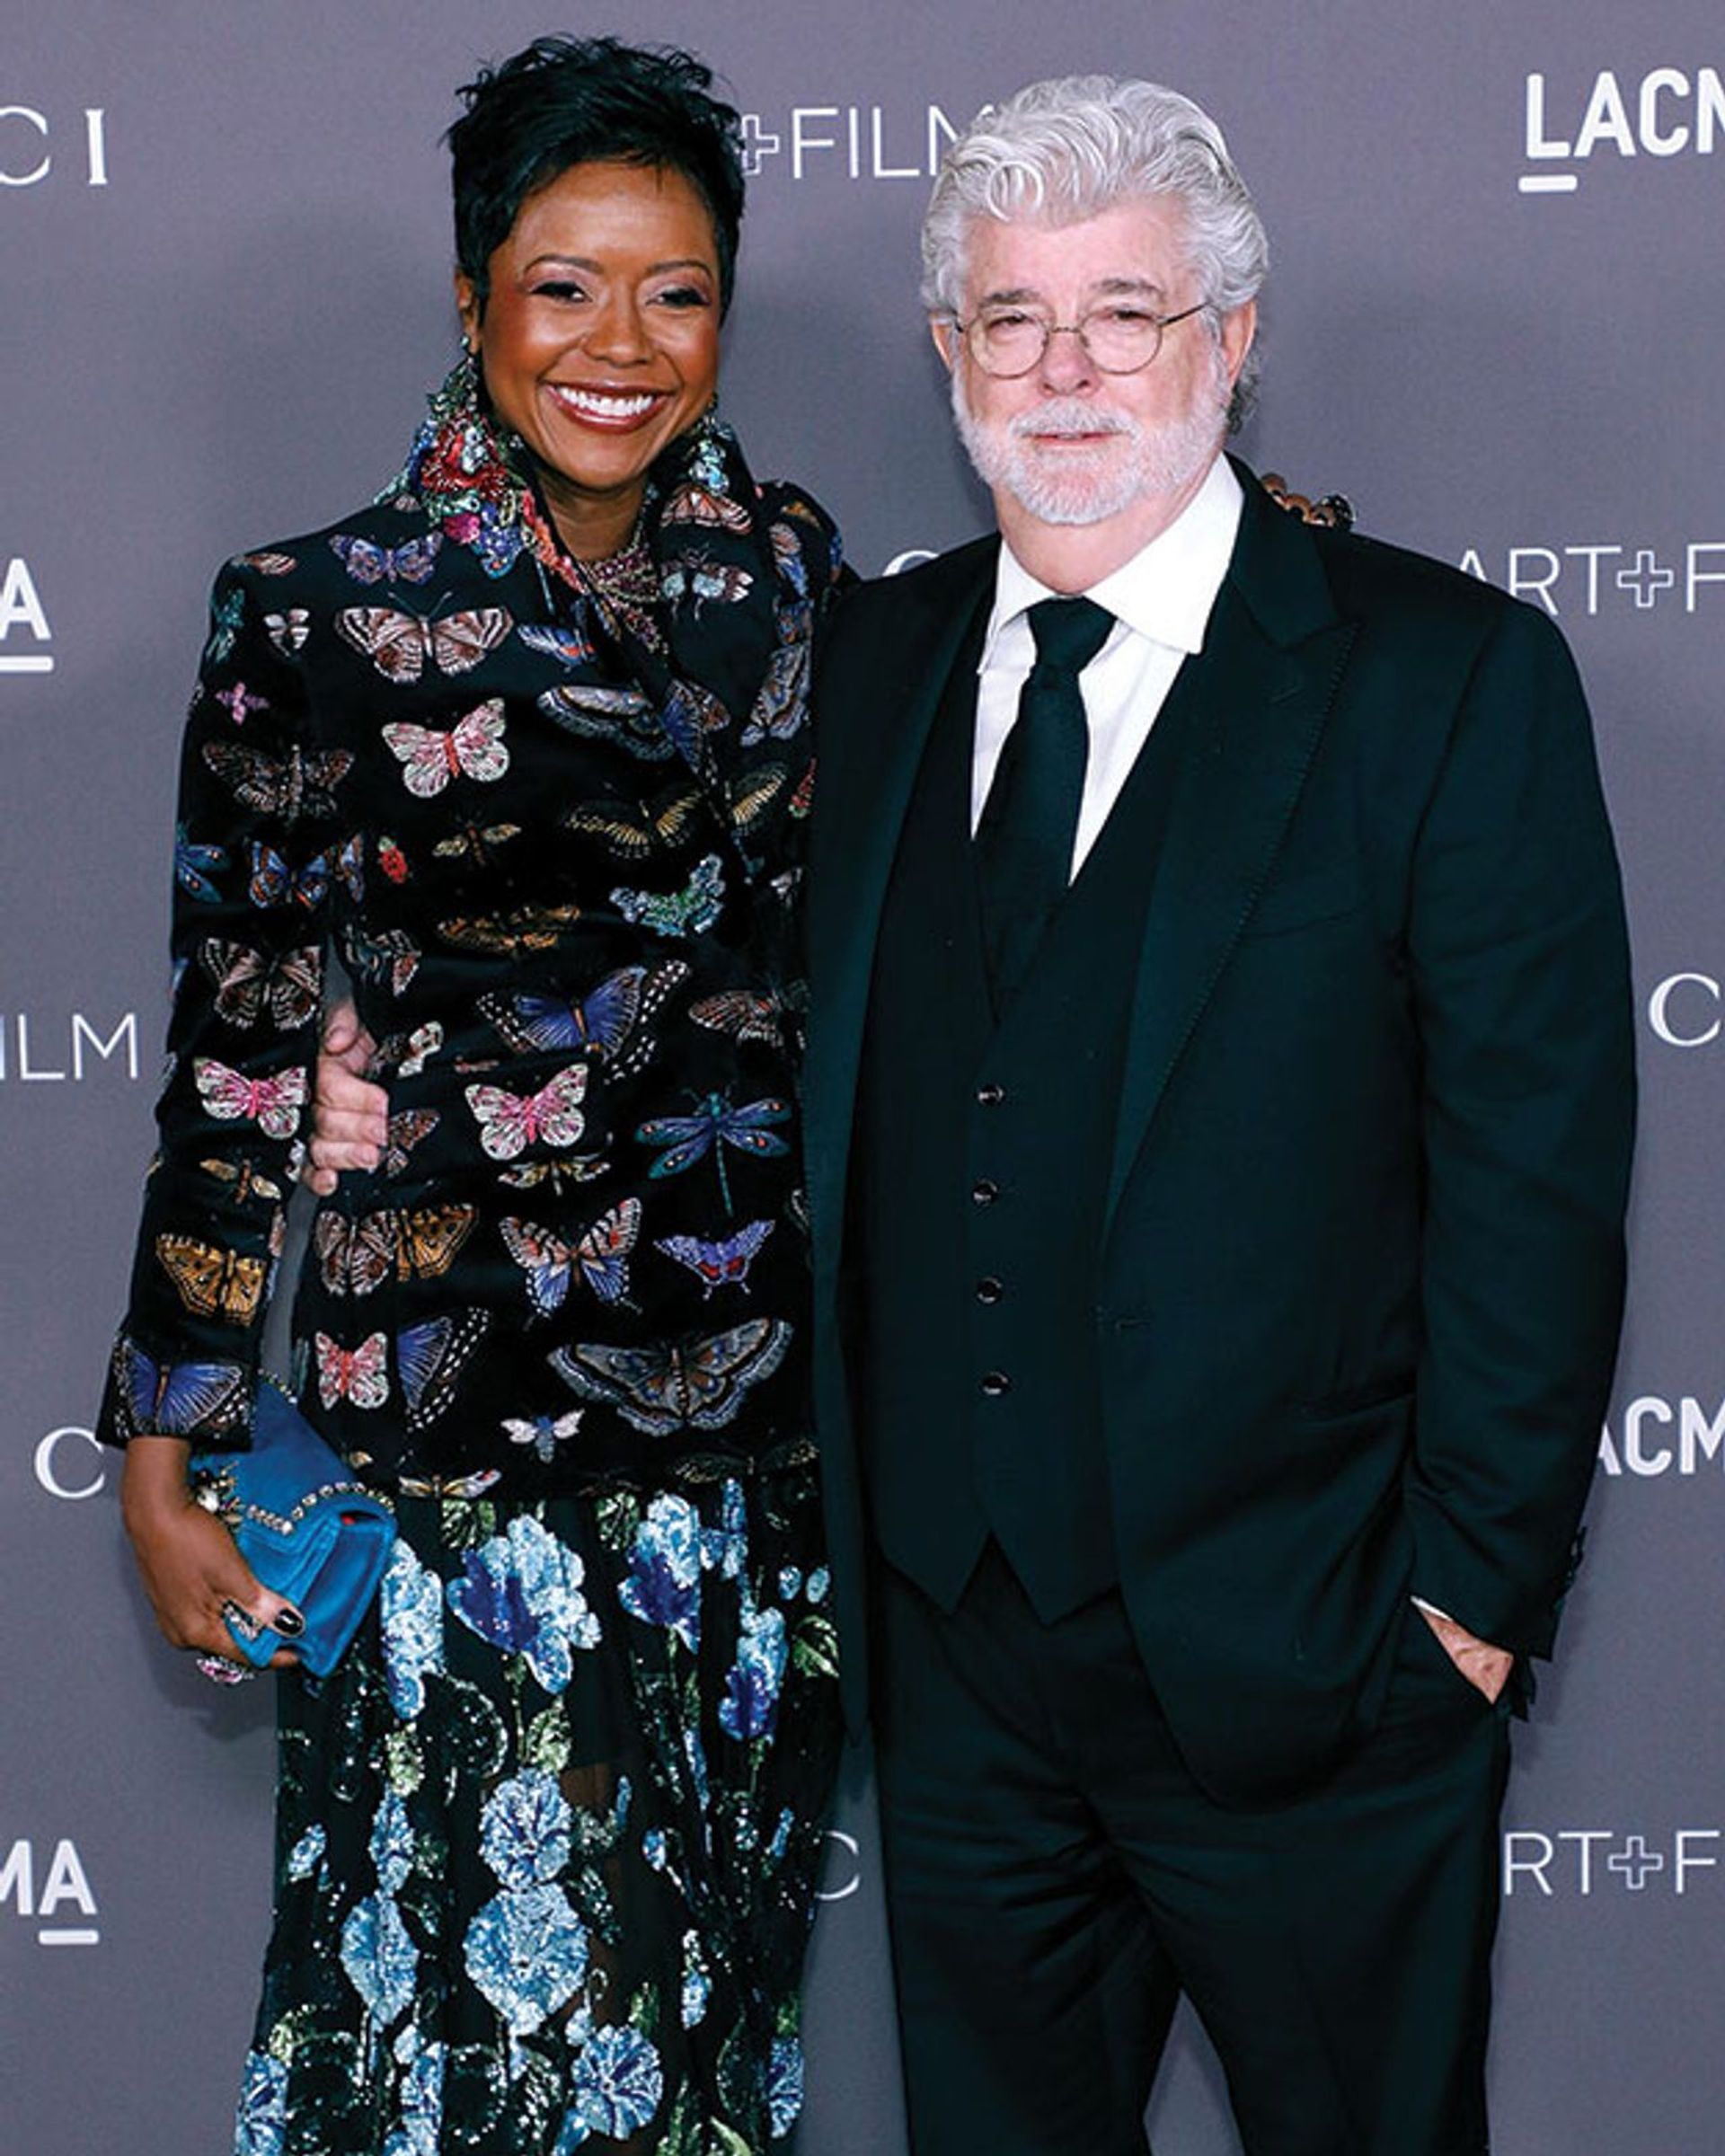 George Lucas and his wife Mellody Hobson, the founders of the new museum under construction in Exposition Park, south Los Angeles Photo: Taylor Hill/Getty Images